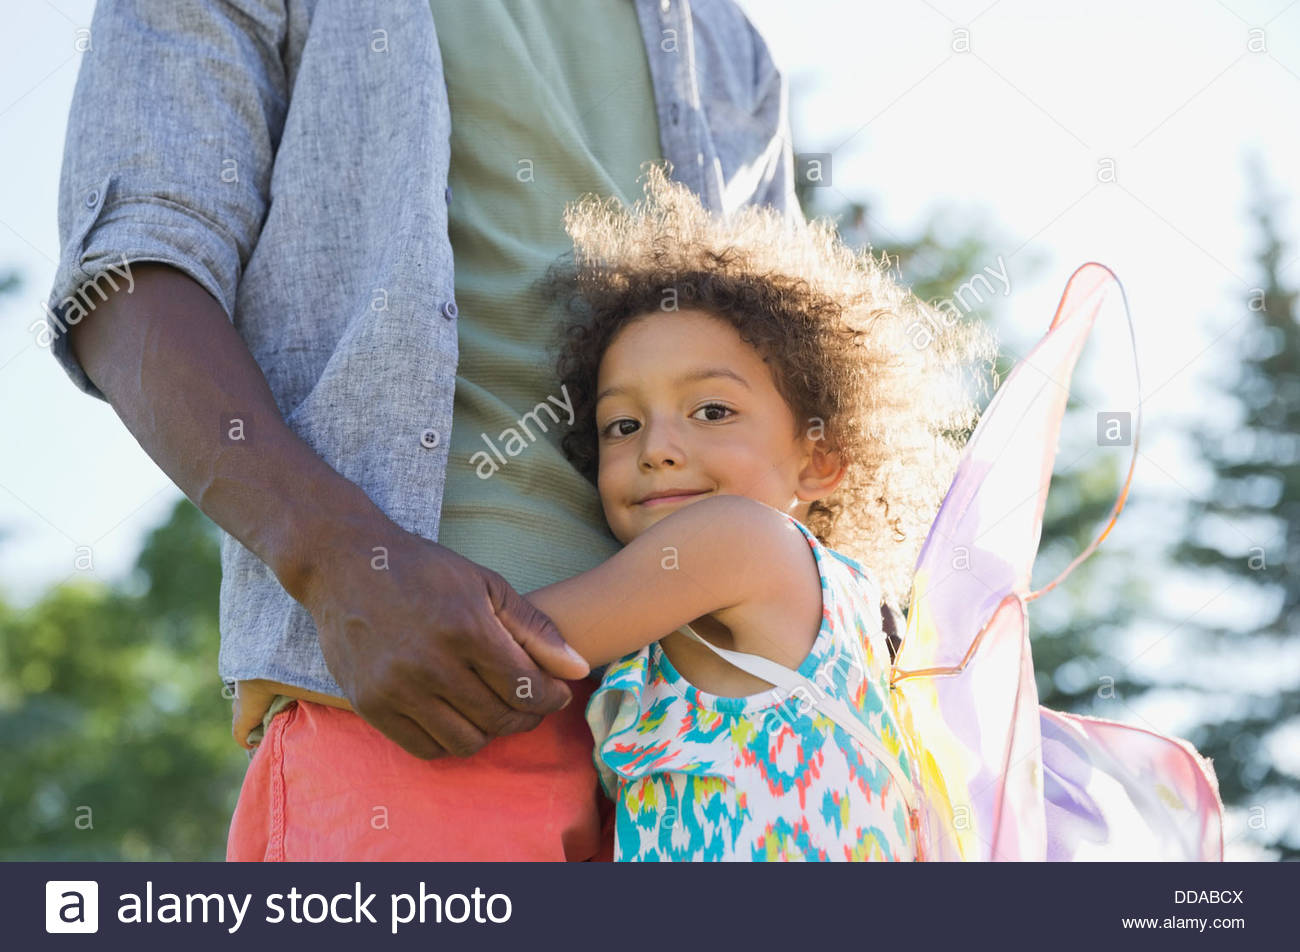 Portrait of cute girl embracing father at park - Stock Image